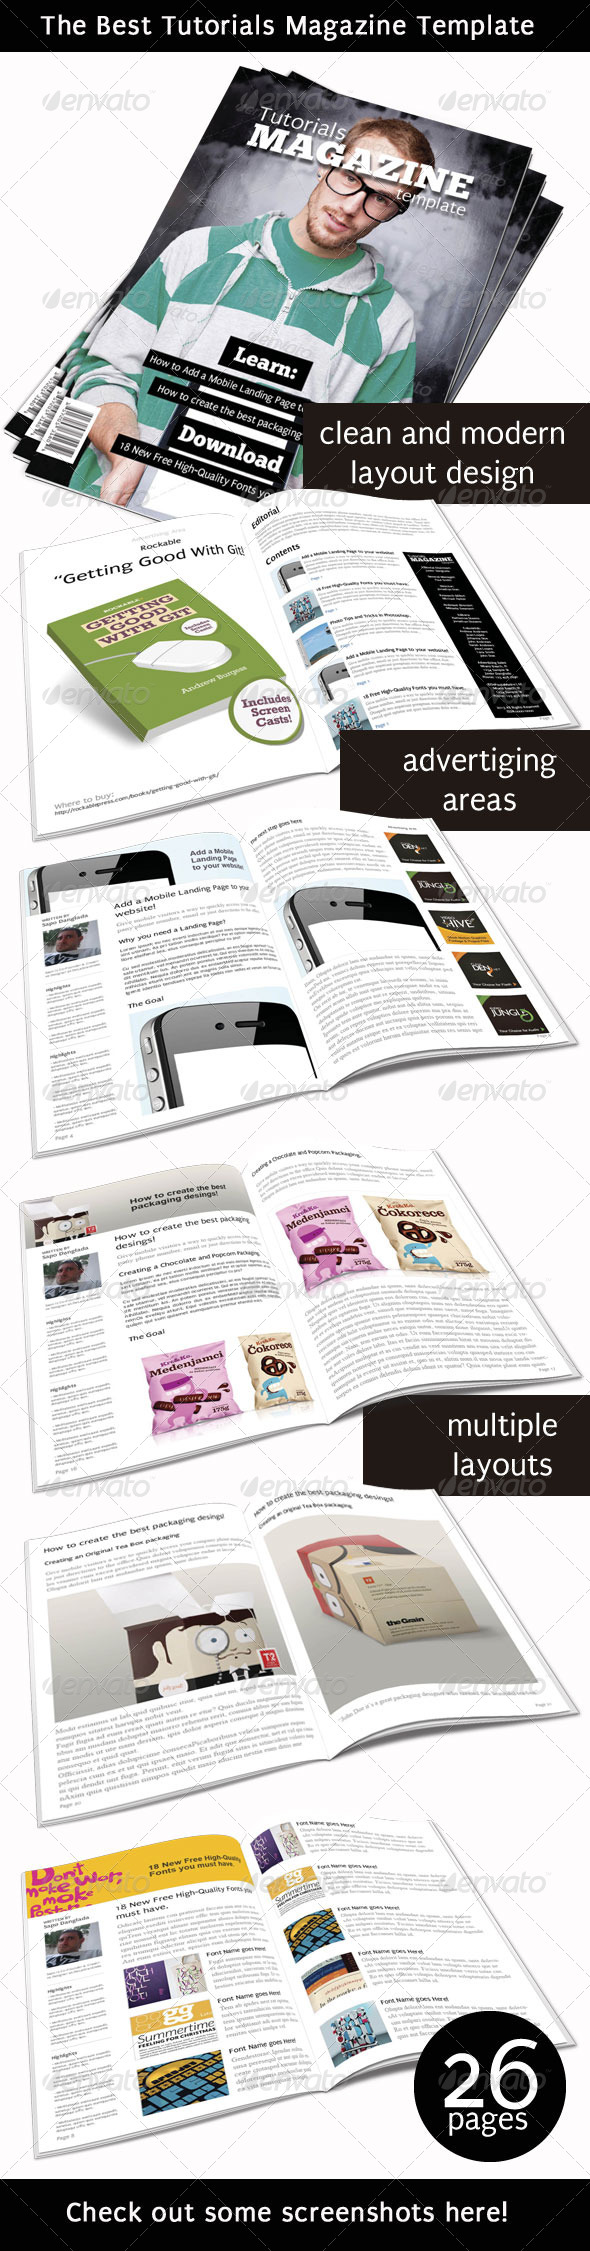 GraphicRiver Tutorials Magazine Indesign Template 3999157